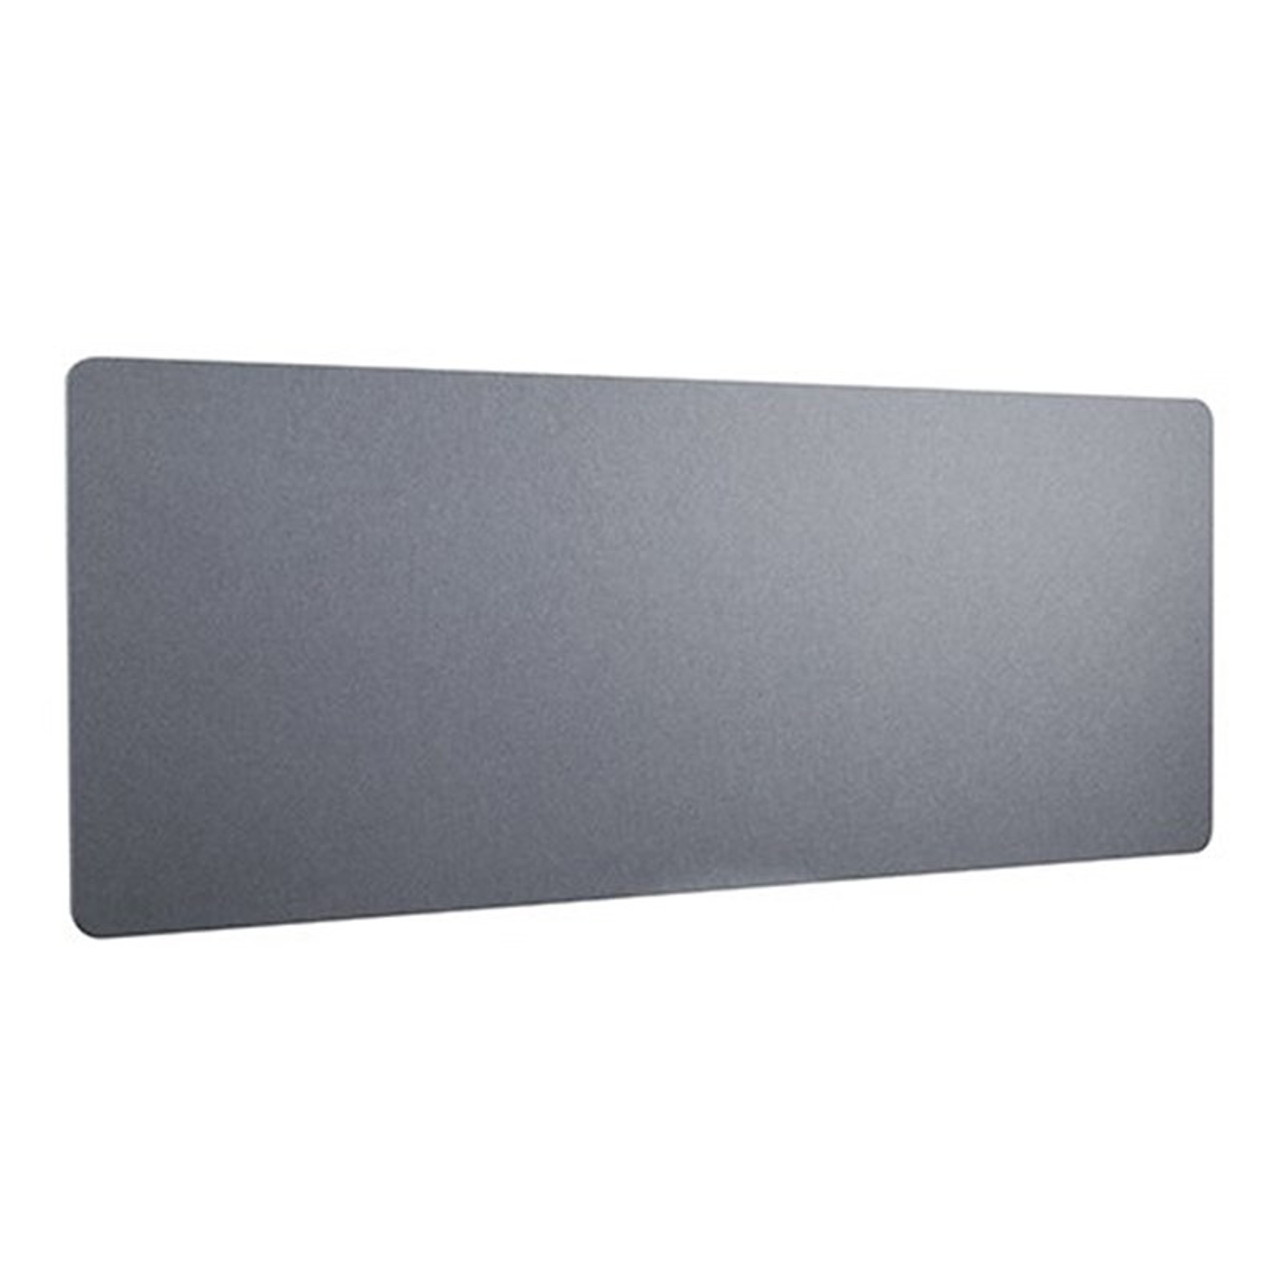 Image for Brateck Acoustic Desktop Privacy Panel with Felt Surface CX Computer Superstore